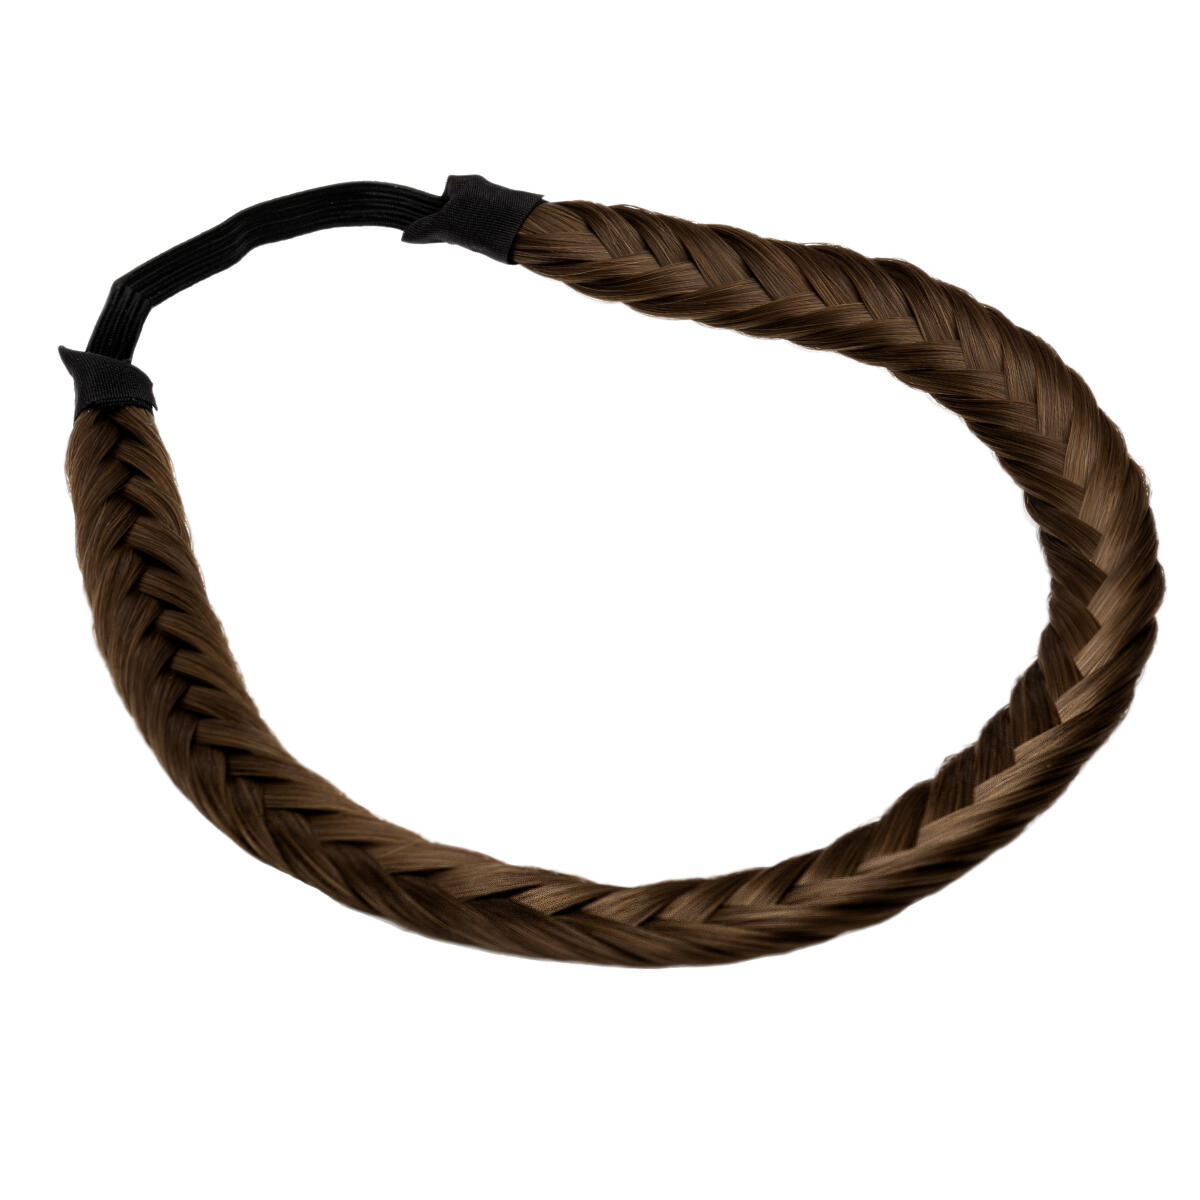 Synthetic Braided Headband 5.0 Brown